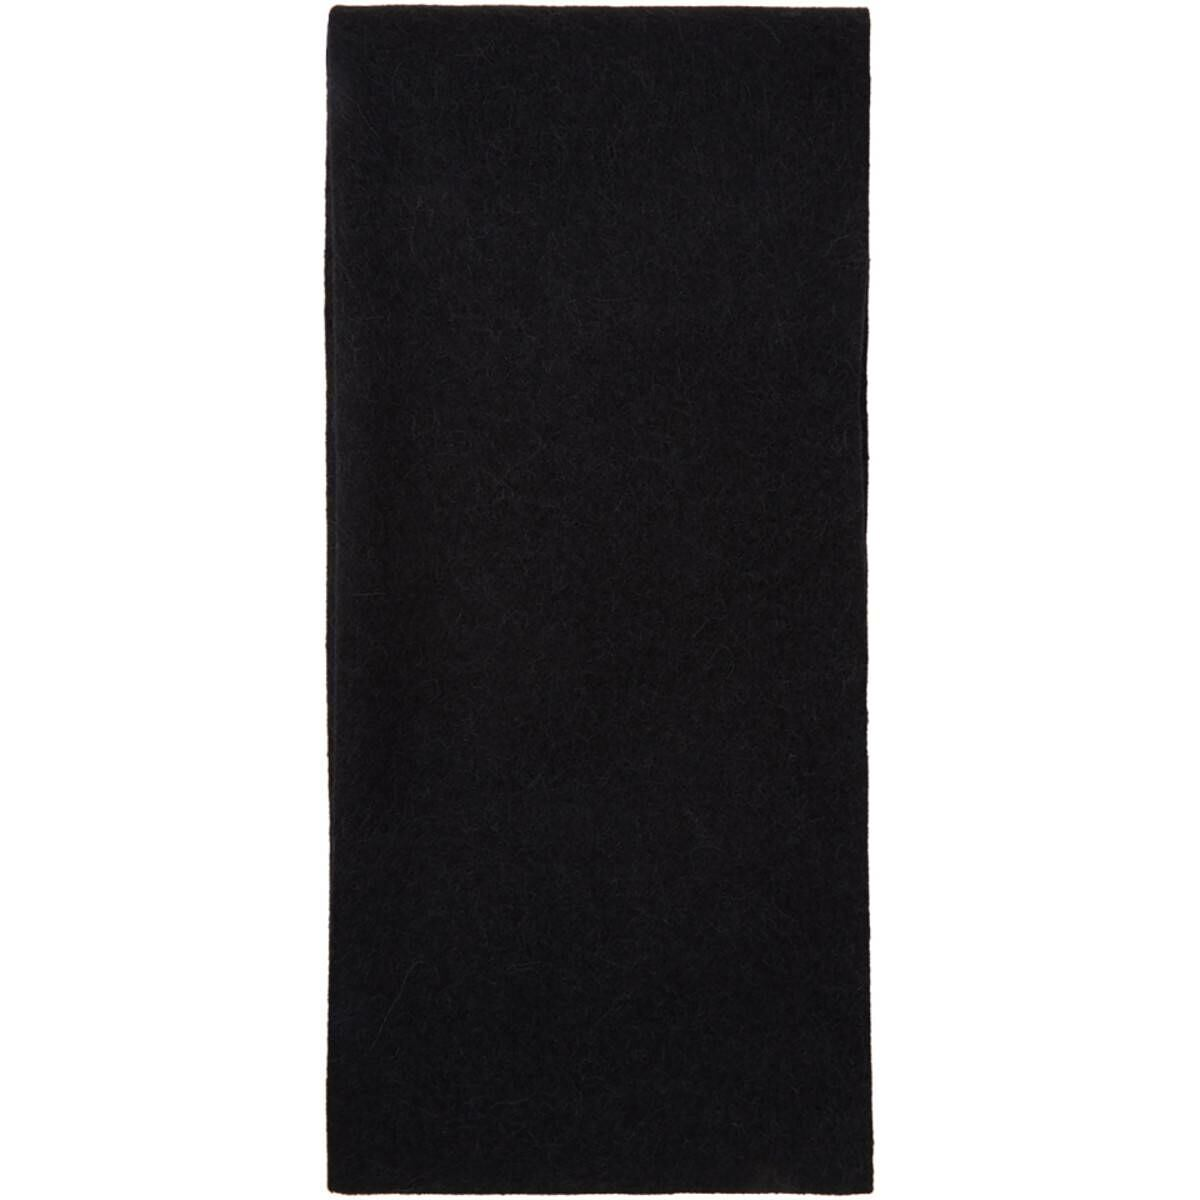 Lemaire Black Alpaca and Wool Oversized Scarf Ssense USA MEN Men ACCESSORIES Mens SCARFS